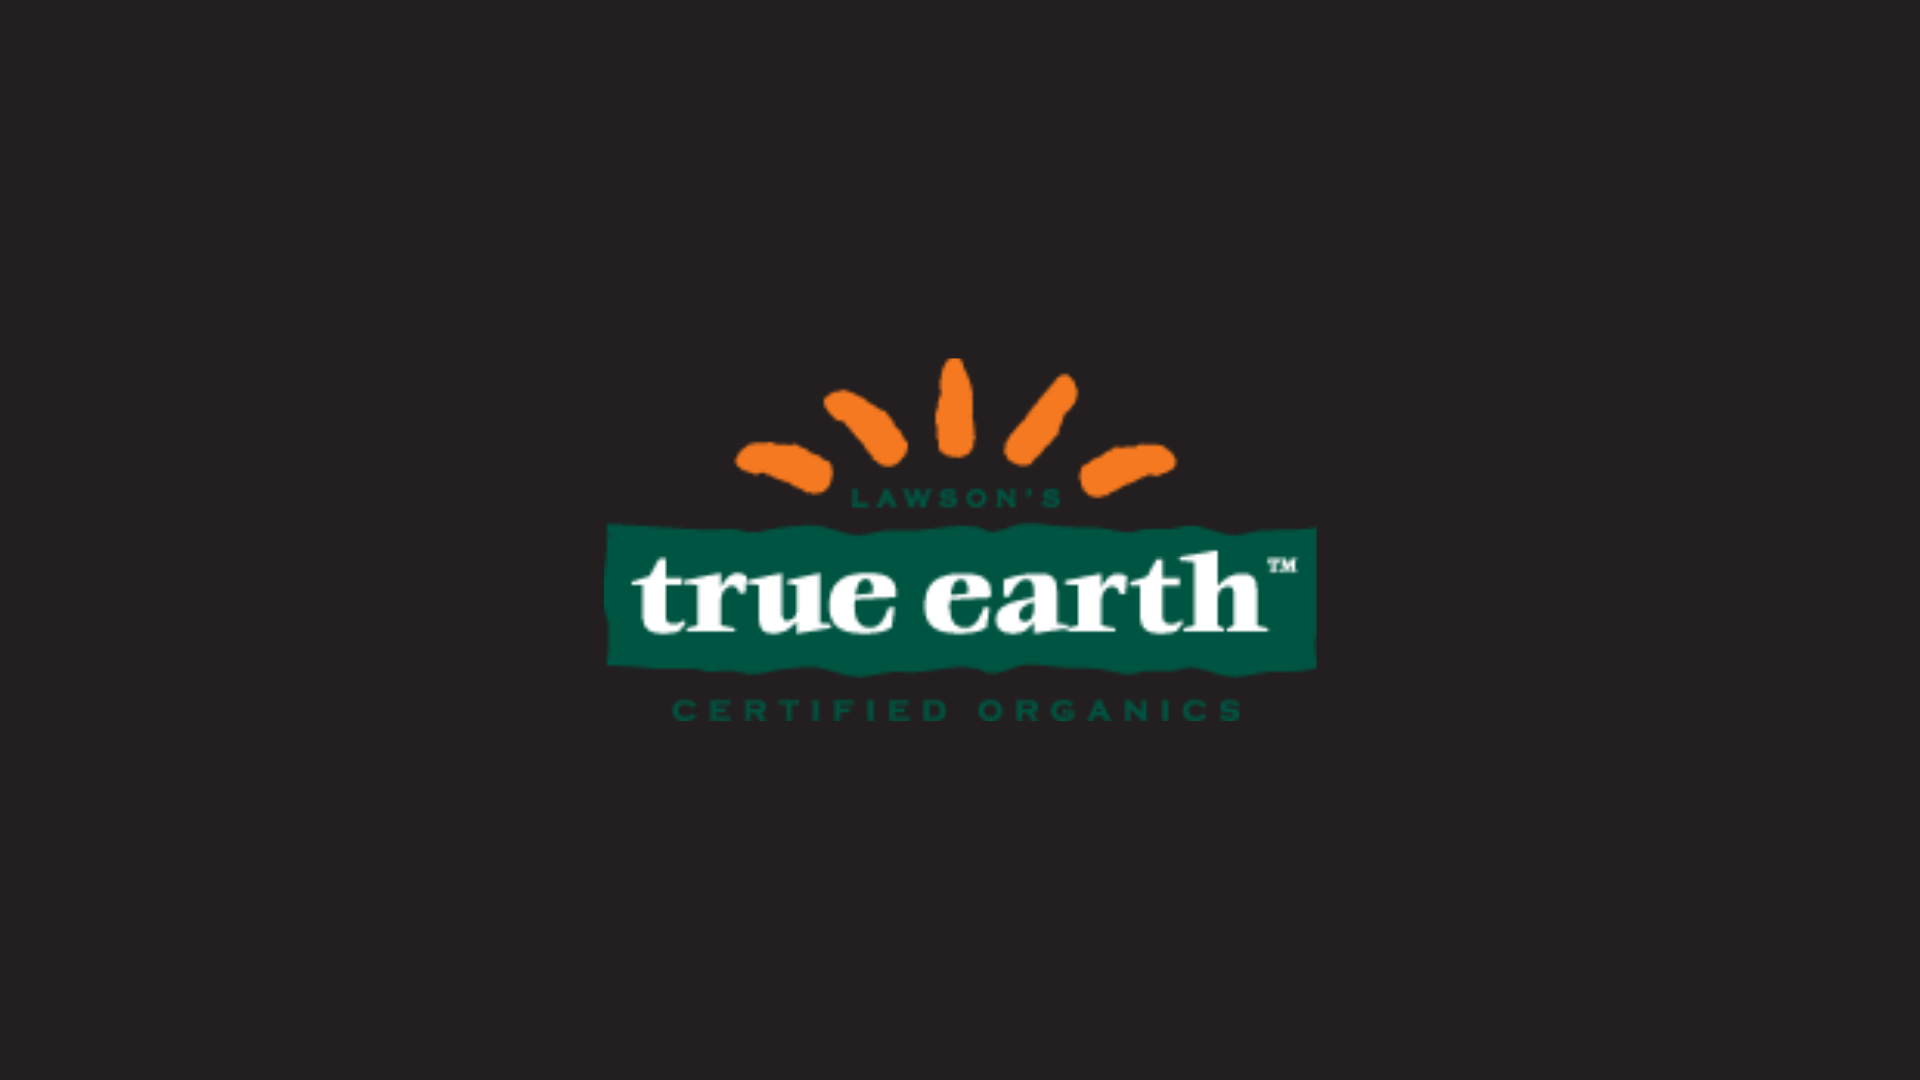 True Earth